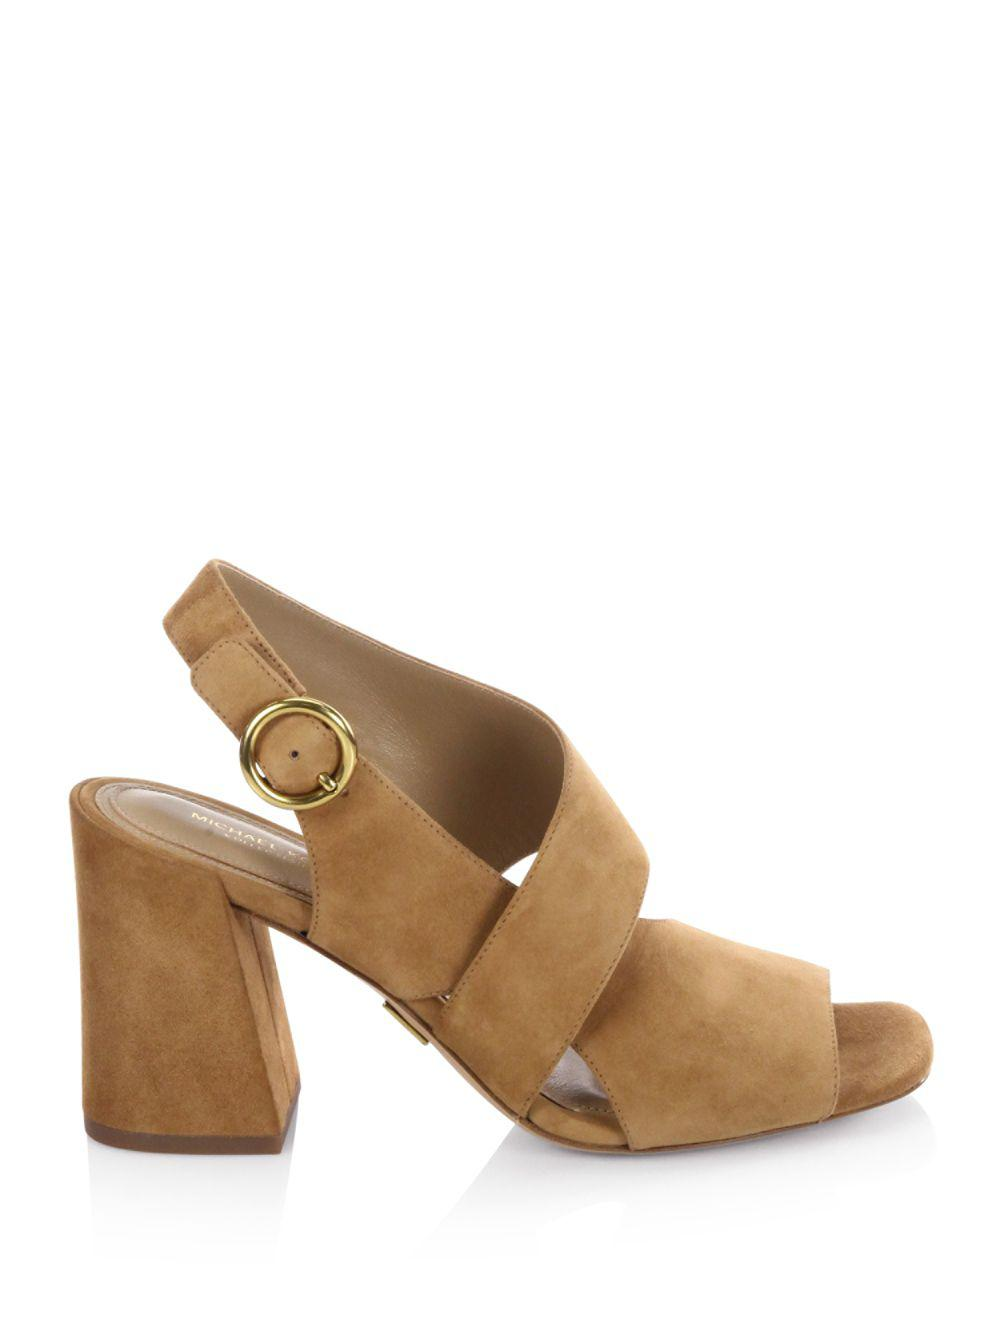 Michael Kors - Multicolor Asher Suede Sandals - Lyst. View fullscreen